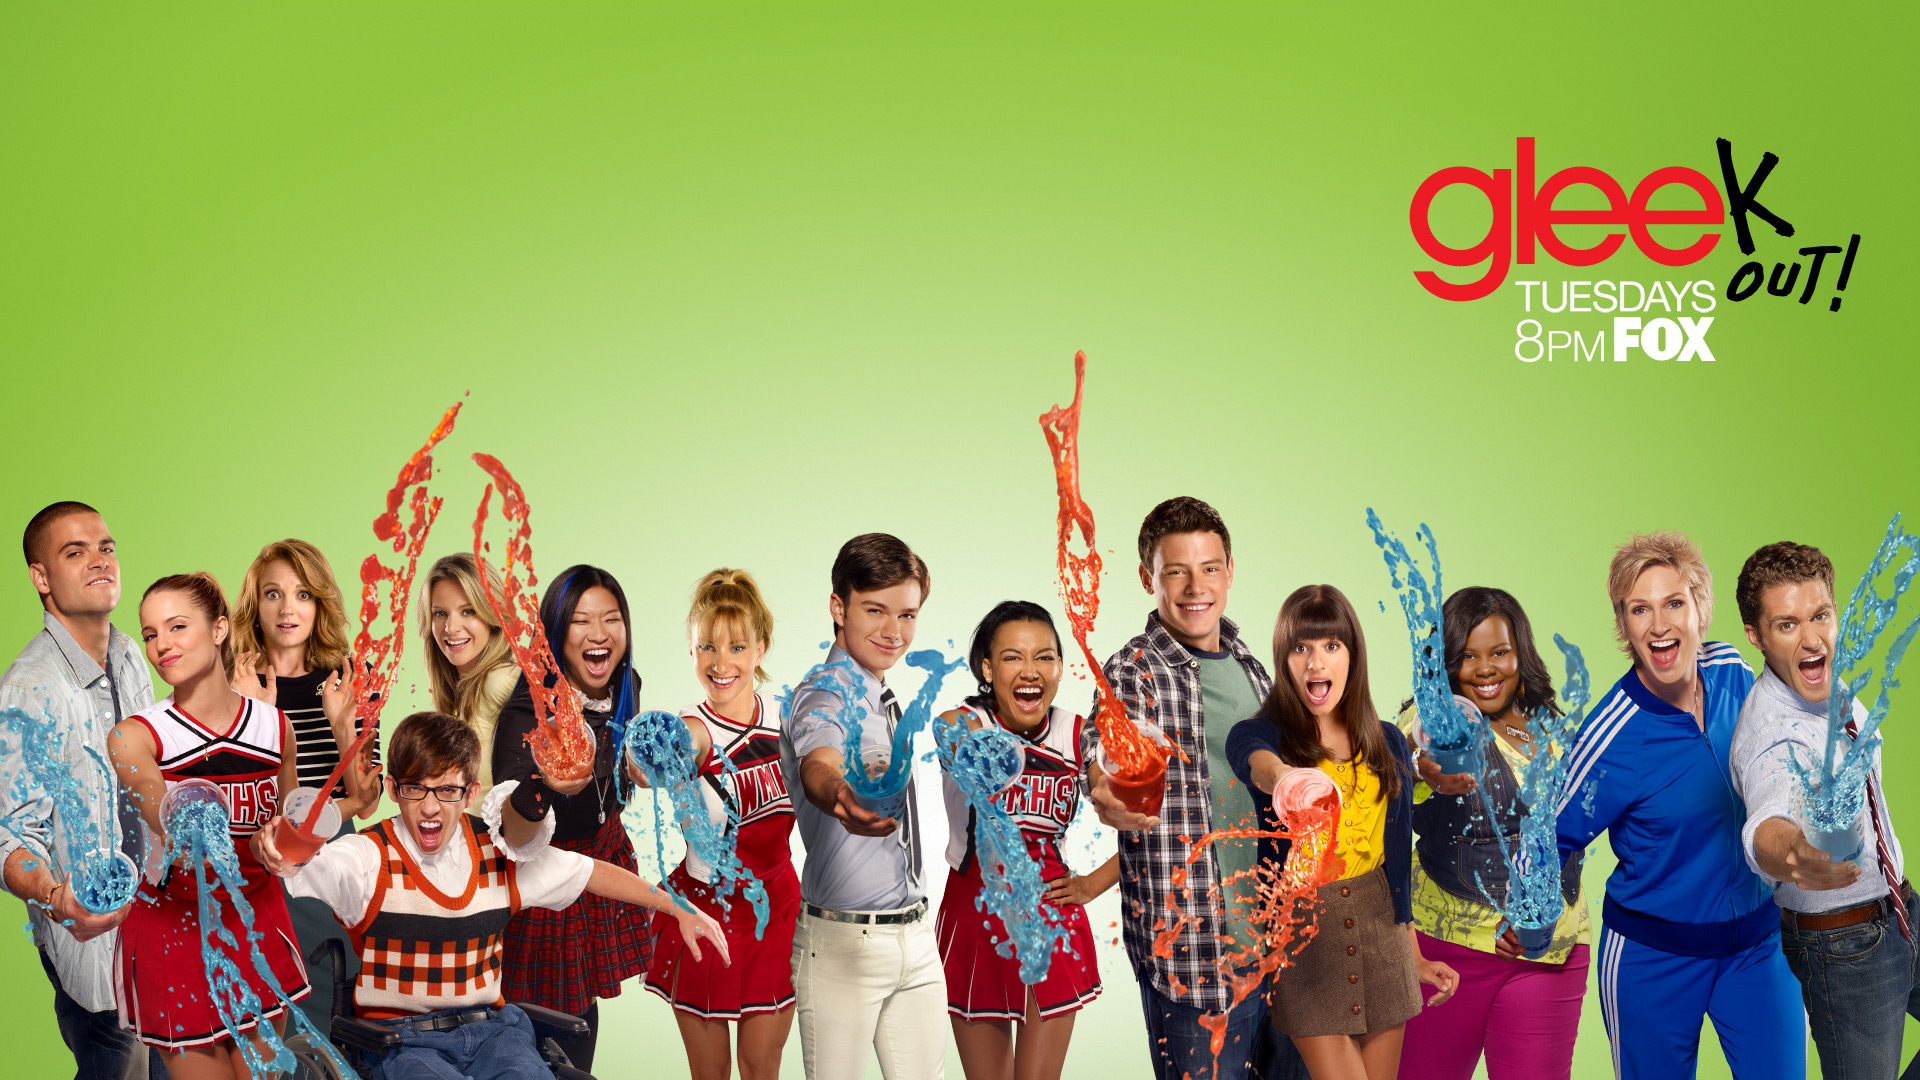 60 Glee Hd Wallpapers Backgrounds Wallpaper Abyss